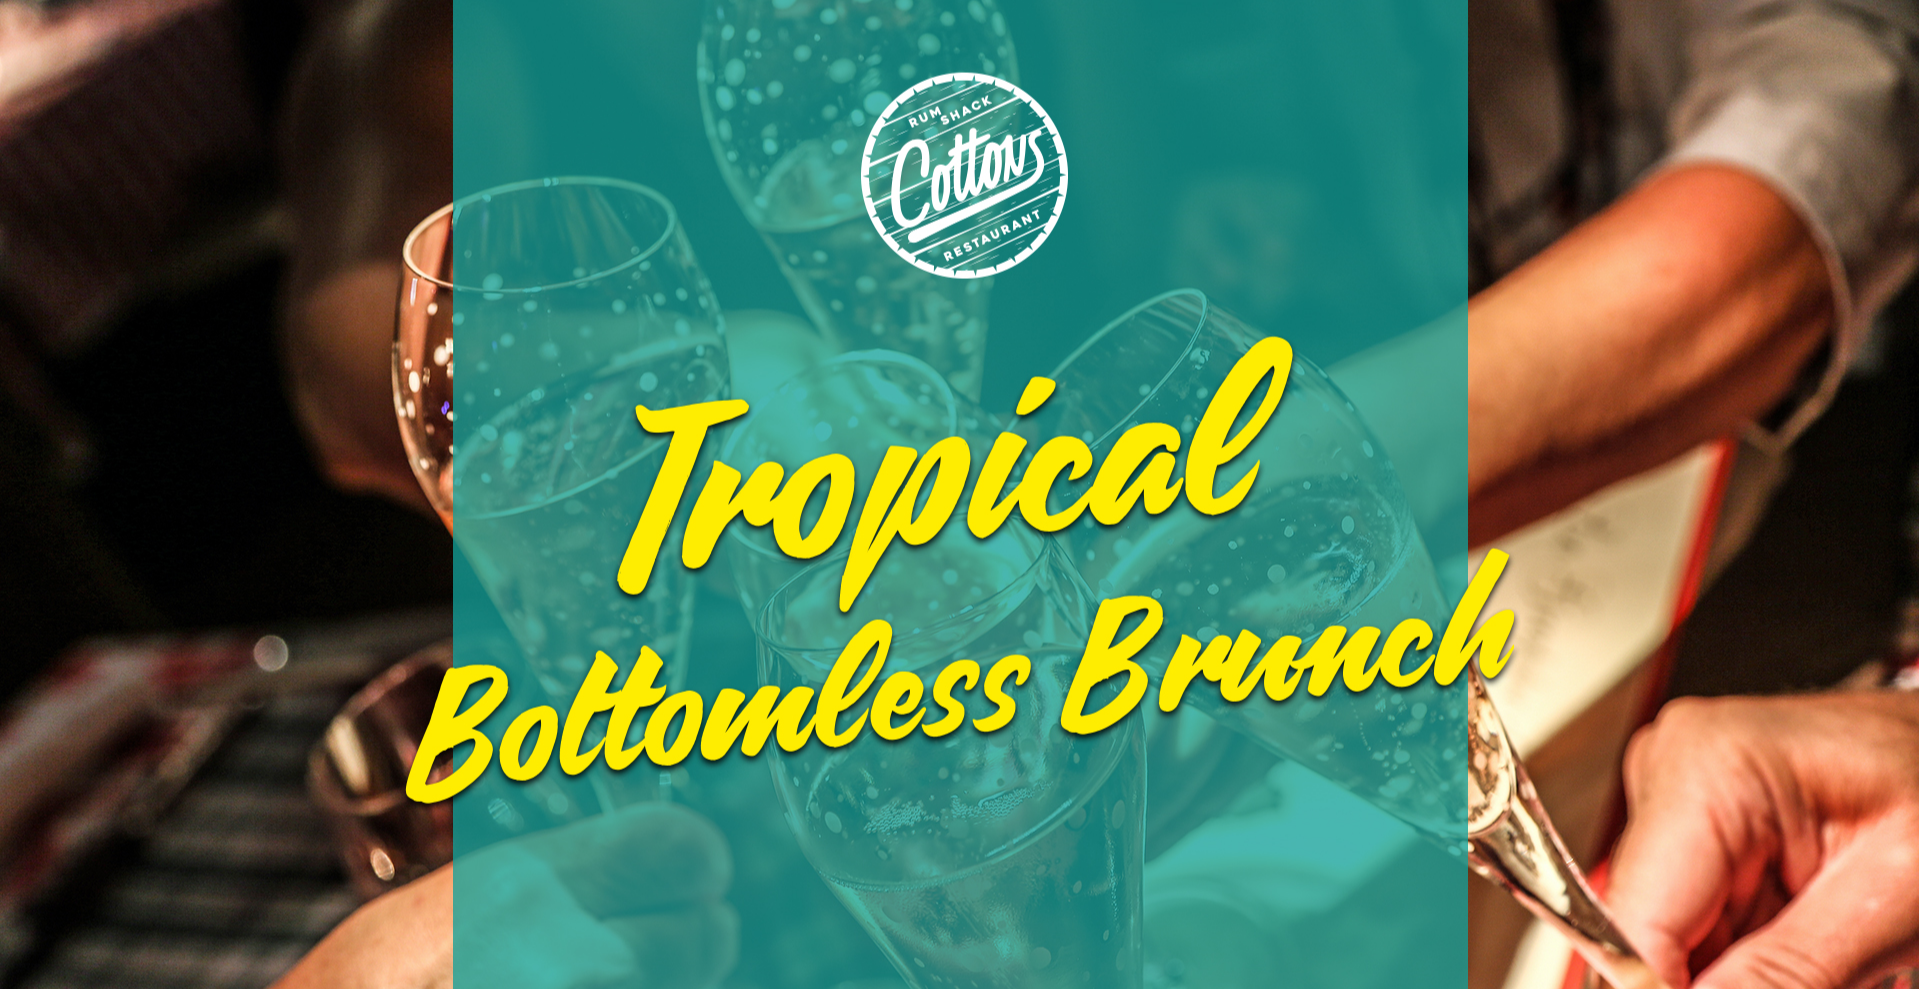 Cottons Tropical Bottomless Brunch